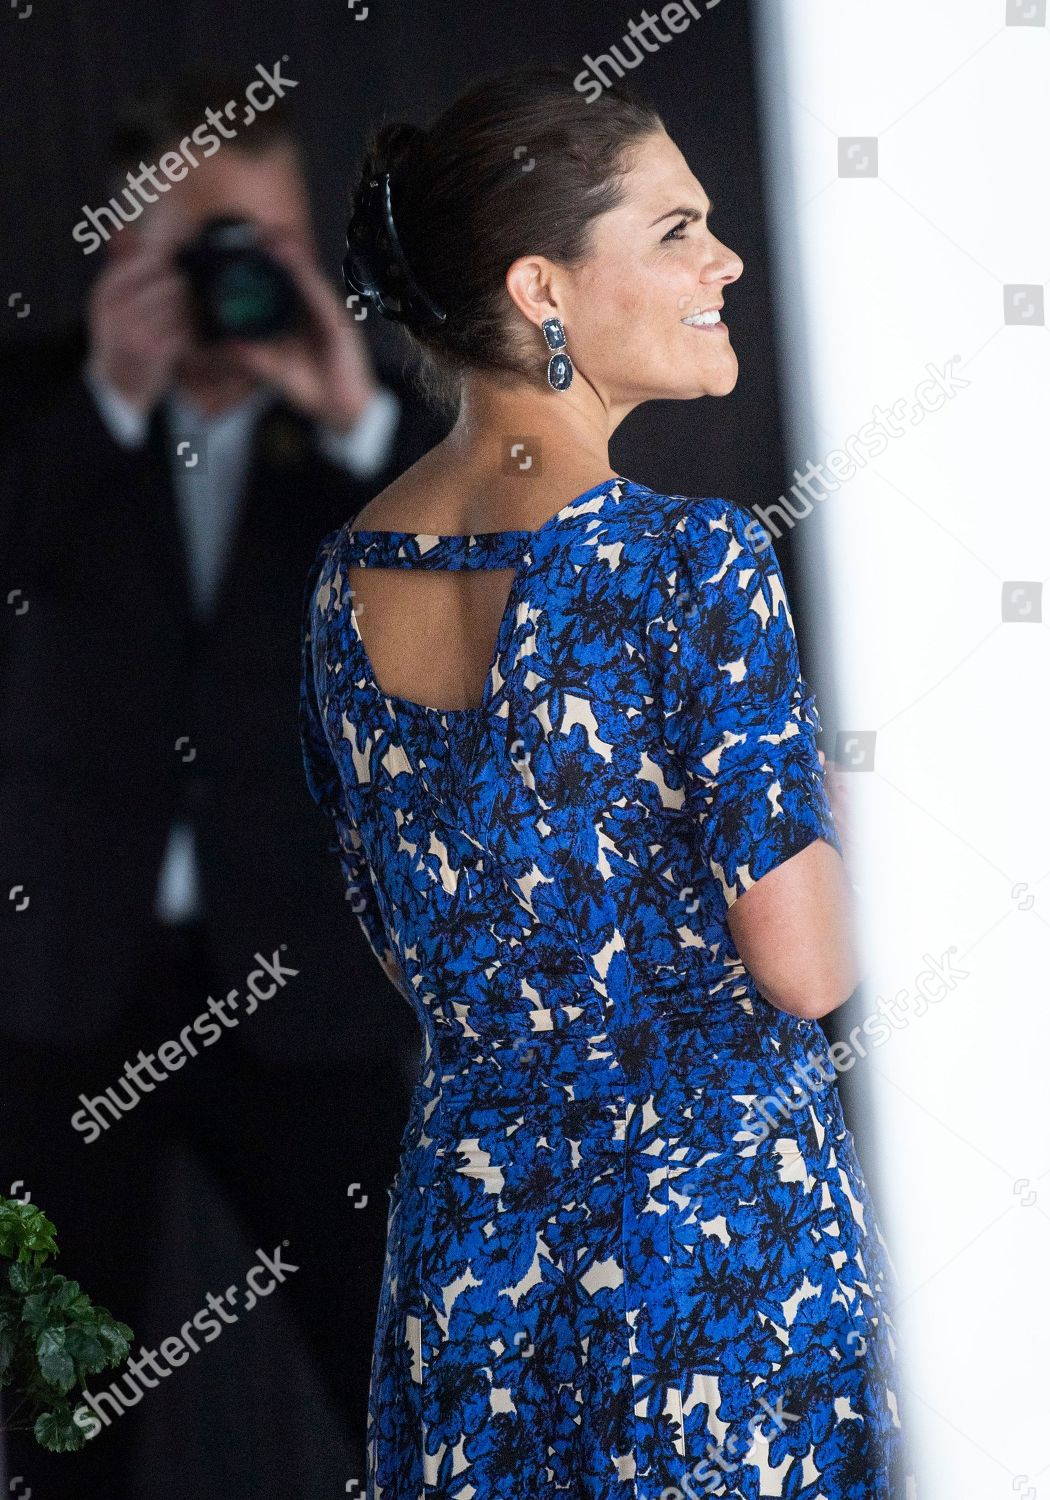 prince-daniel-and-crown-princess-victoria-at-visita-stockholm-sweden-shutterstock-editorial-10750019r.jpg